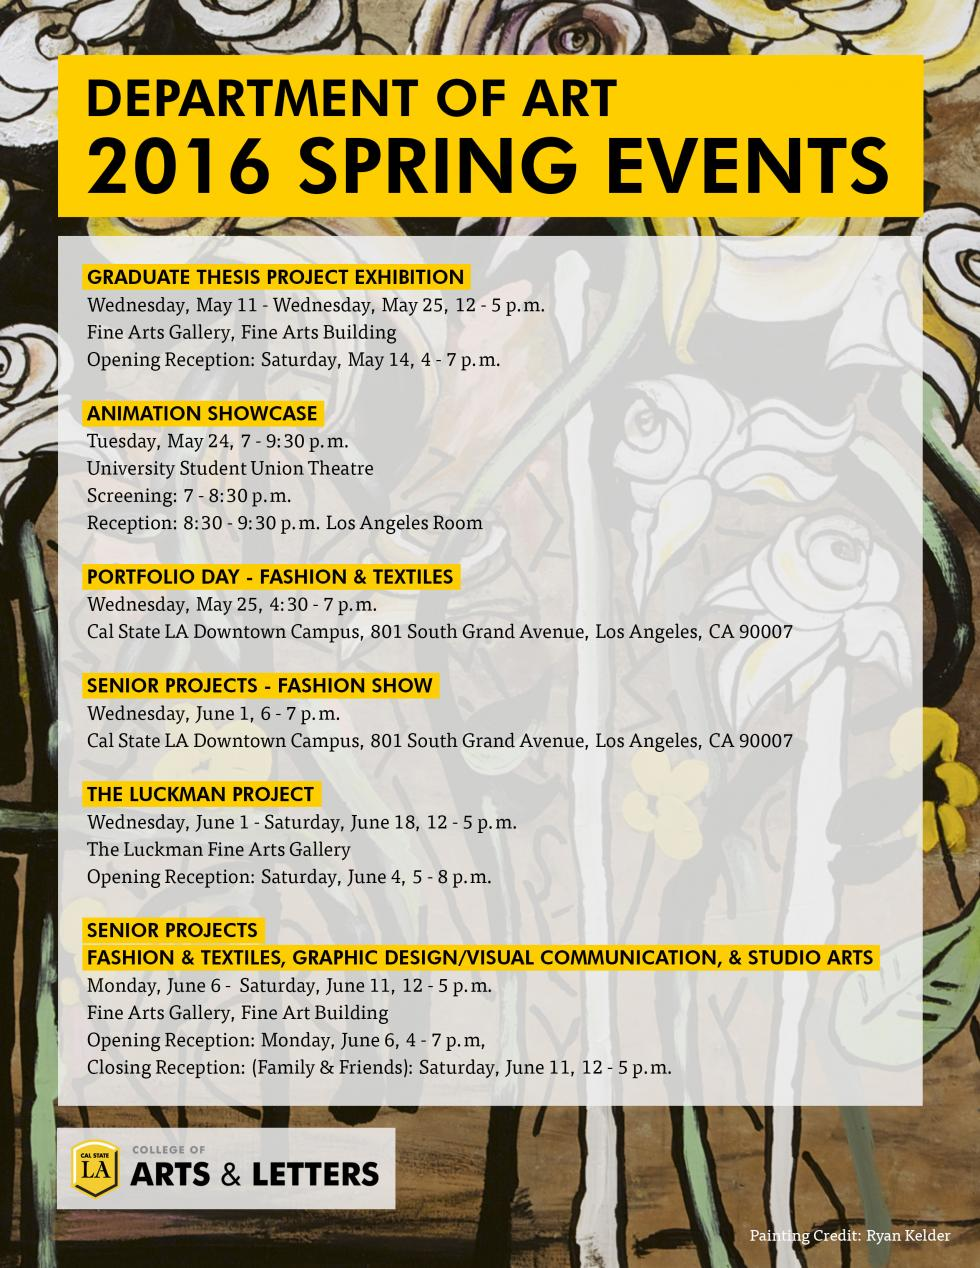 Spring Art Events